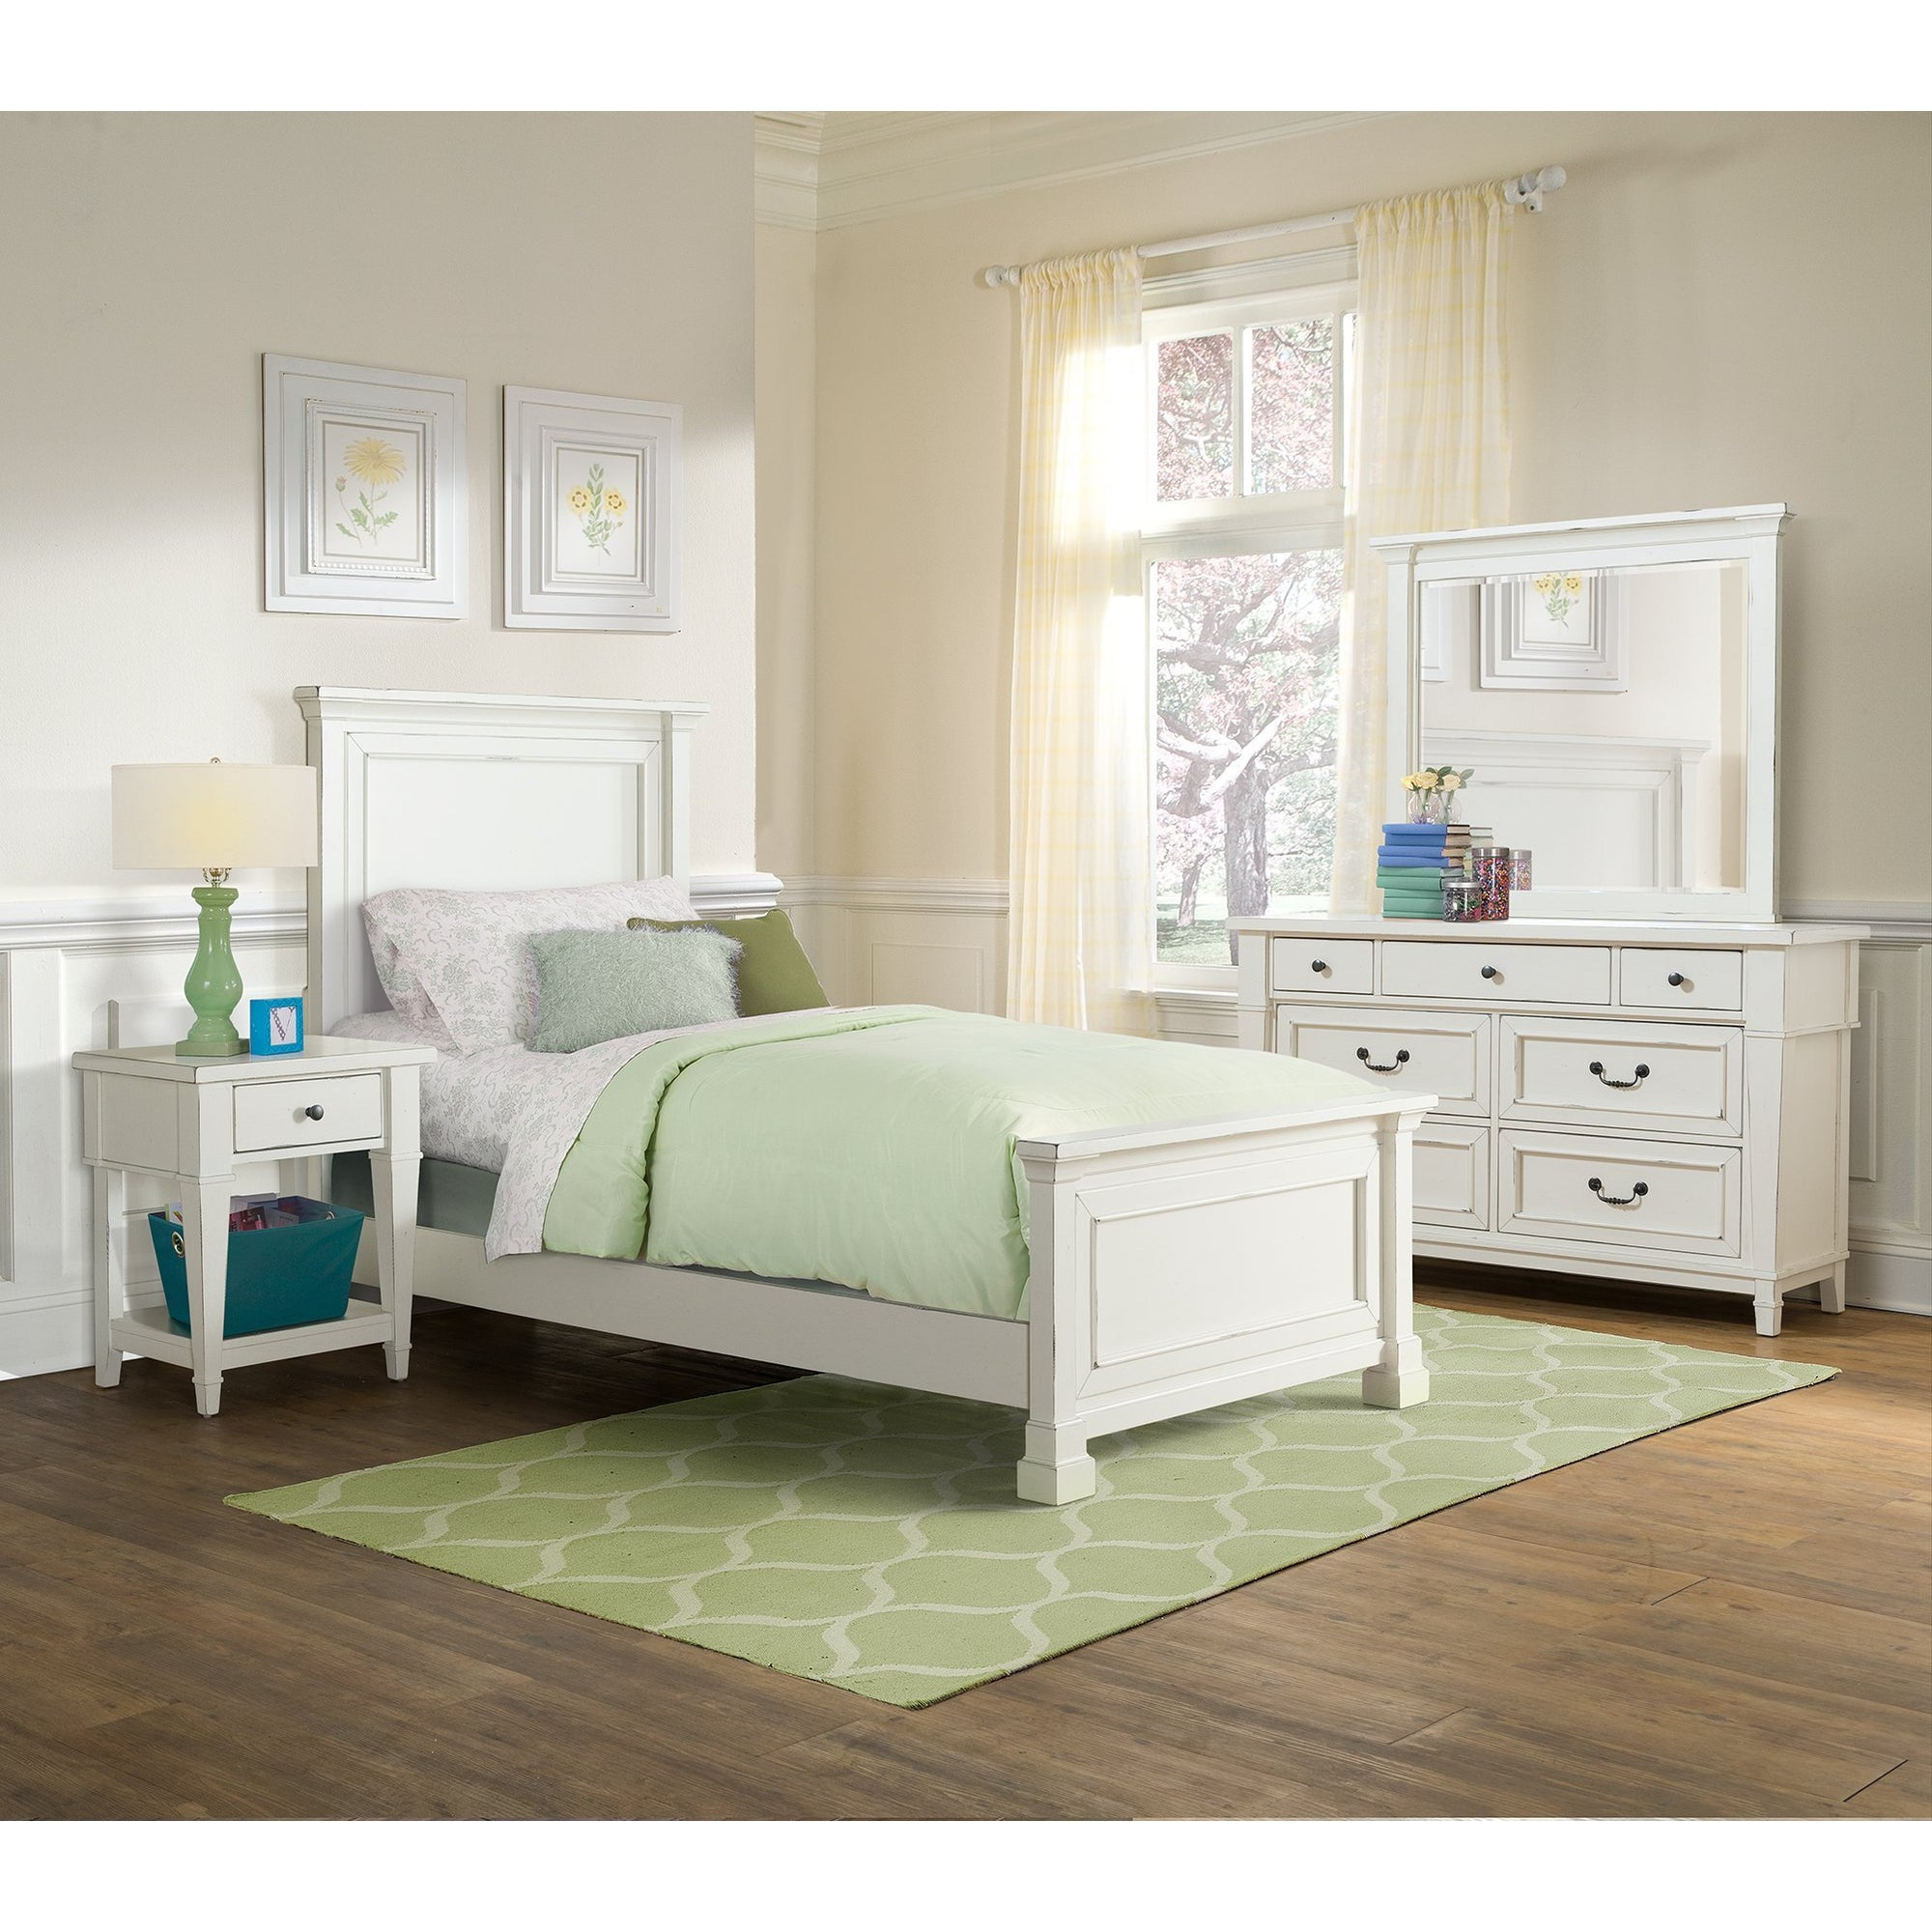 Pebble Creek Youth Twin Bed